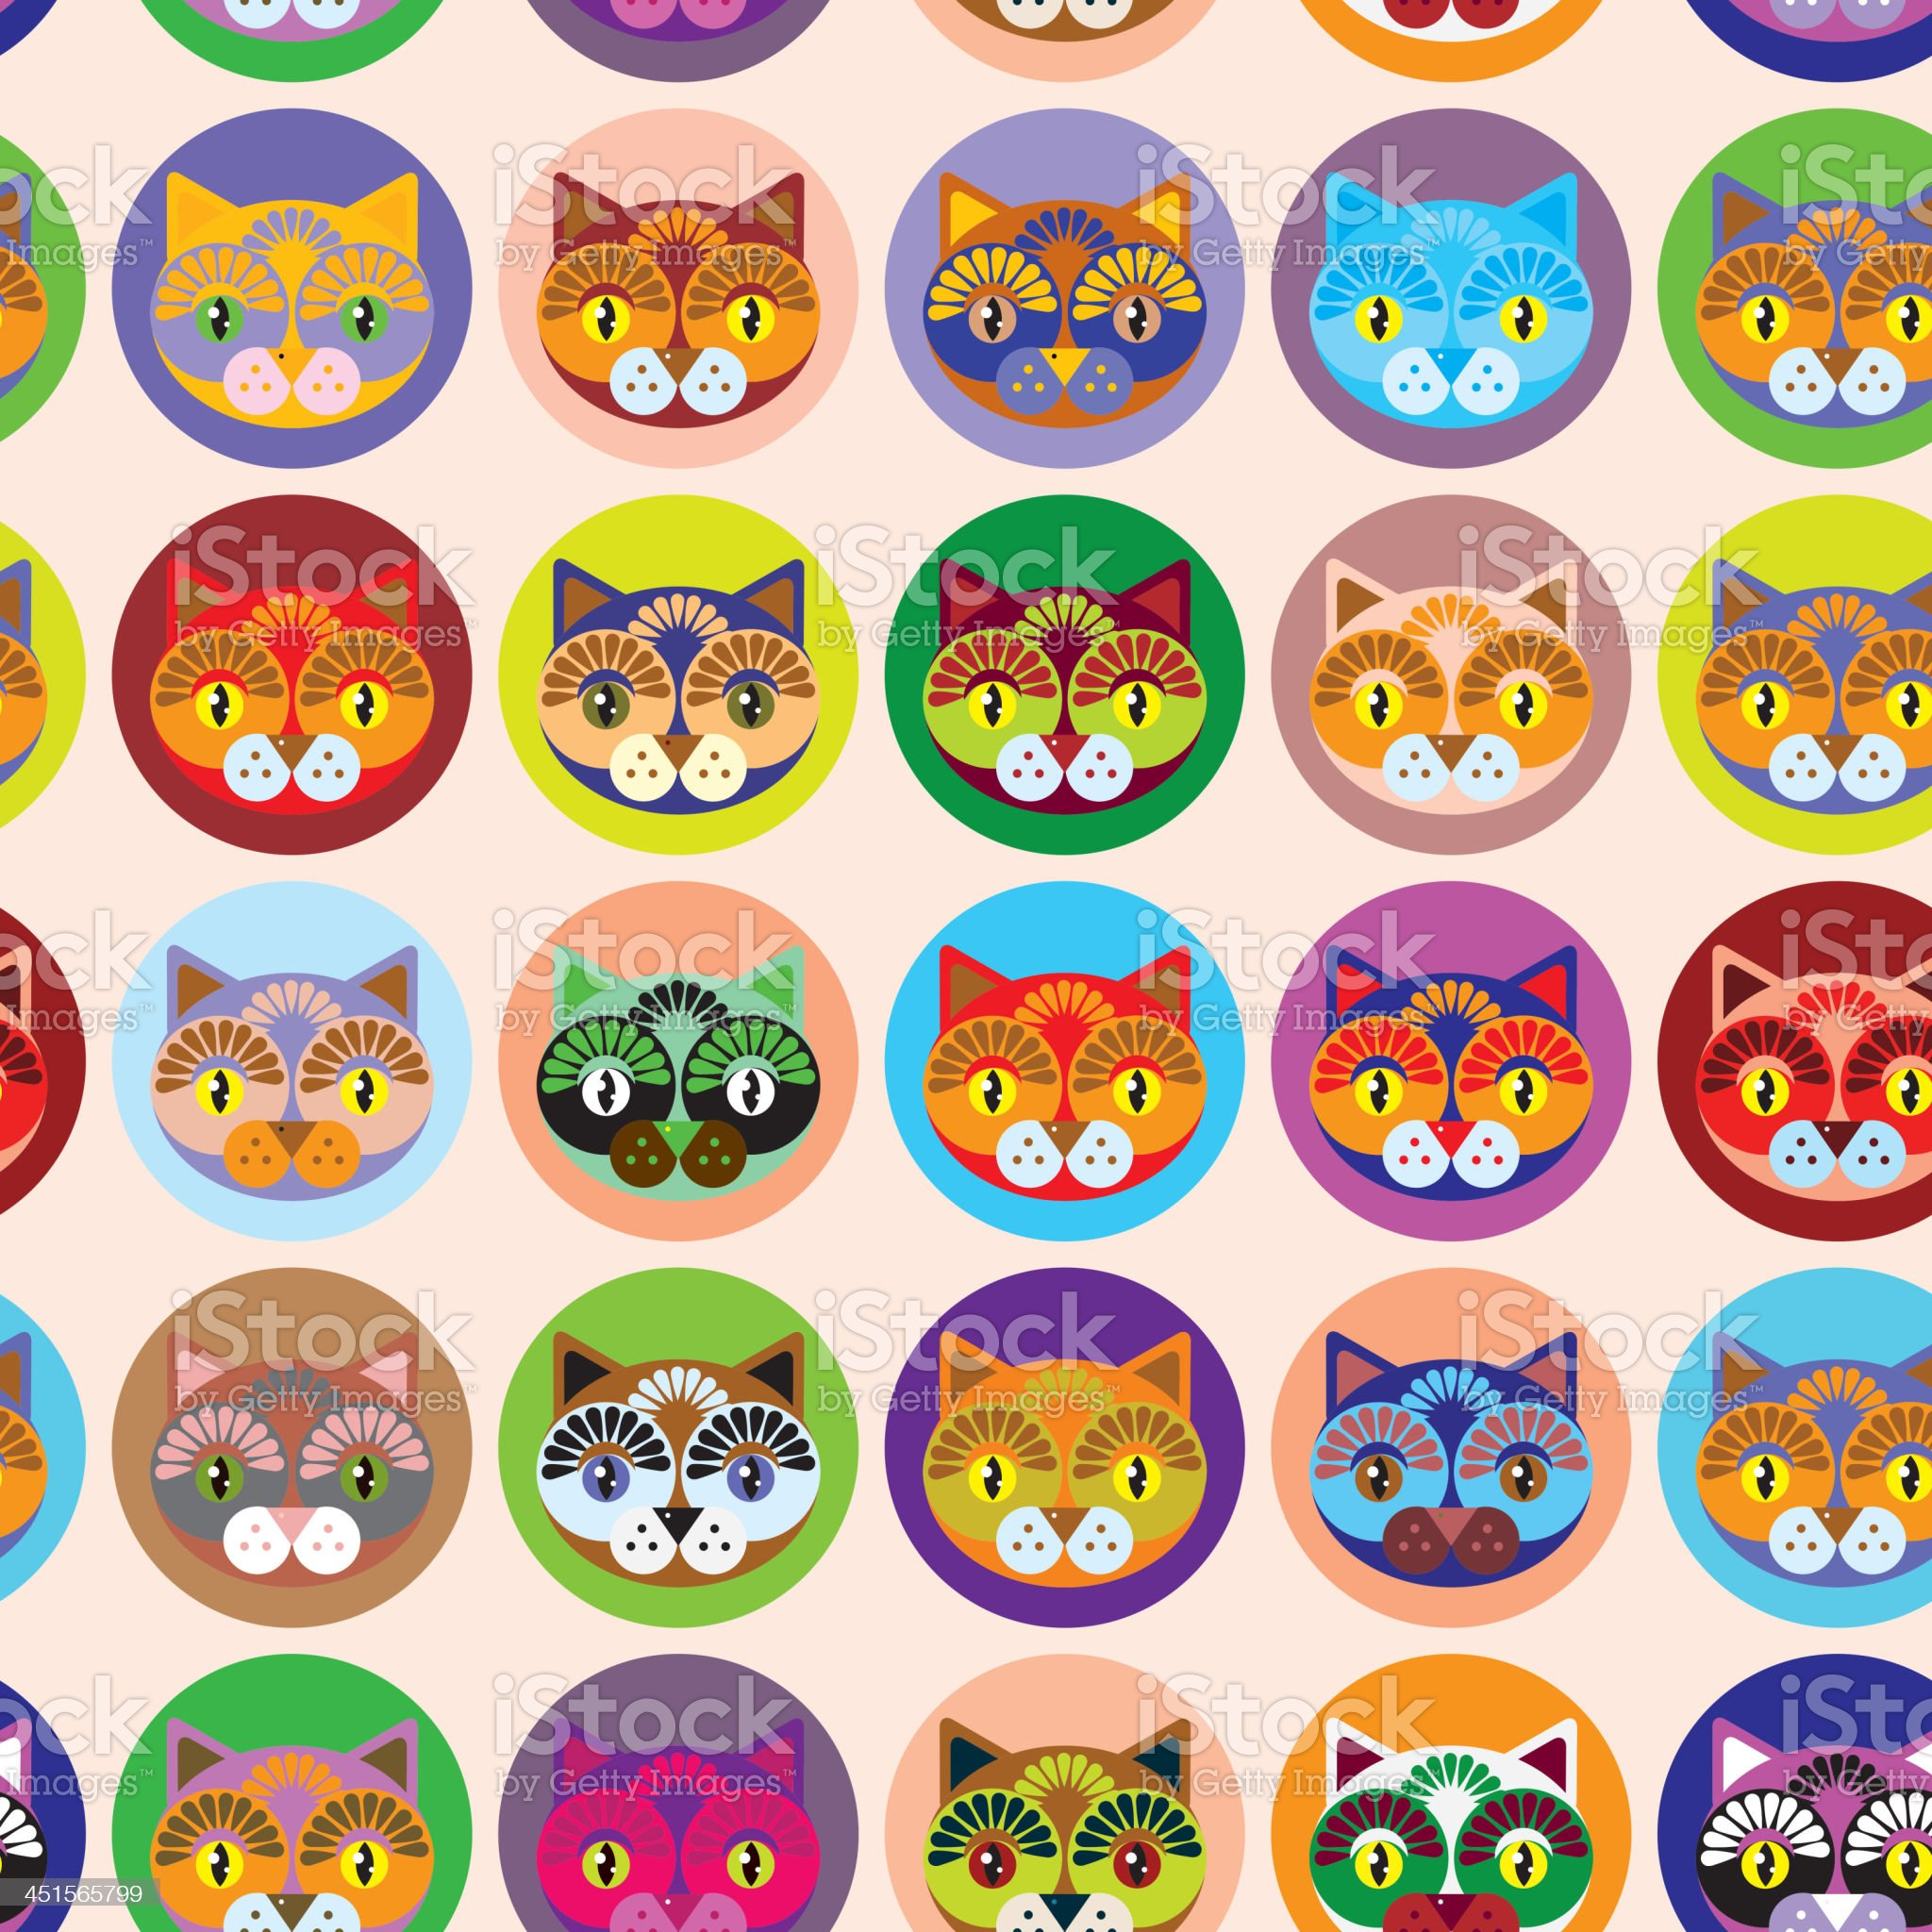 Seamless background with muzzle of cats. vector royalty-free stock vector art